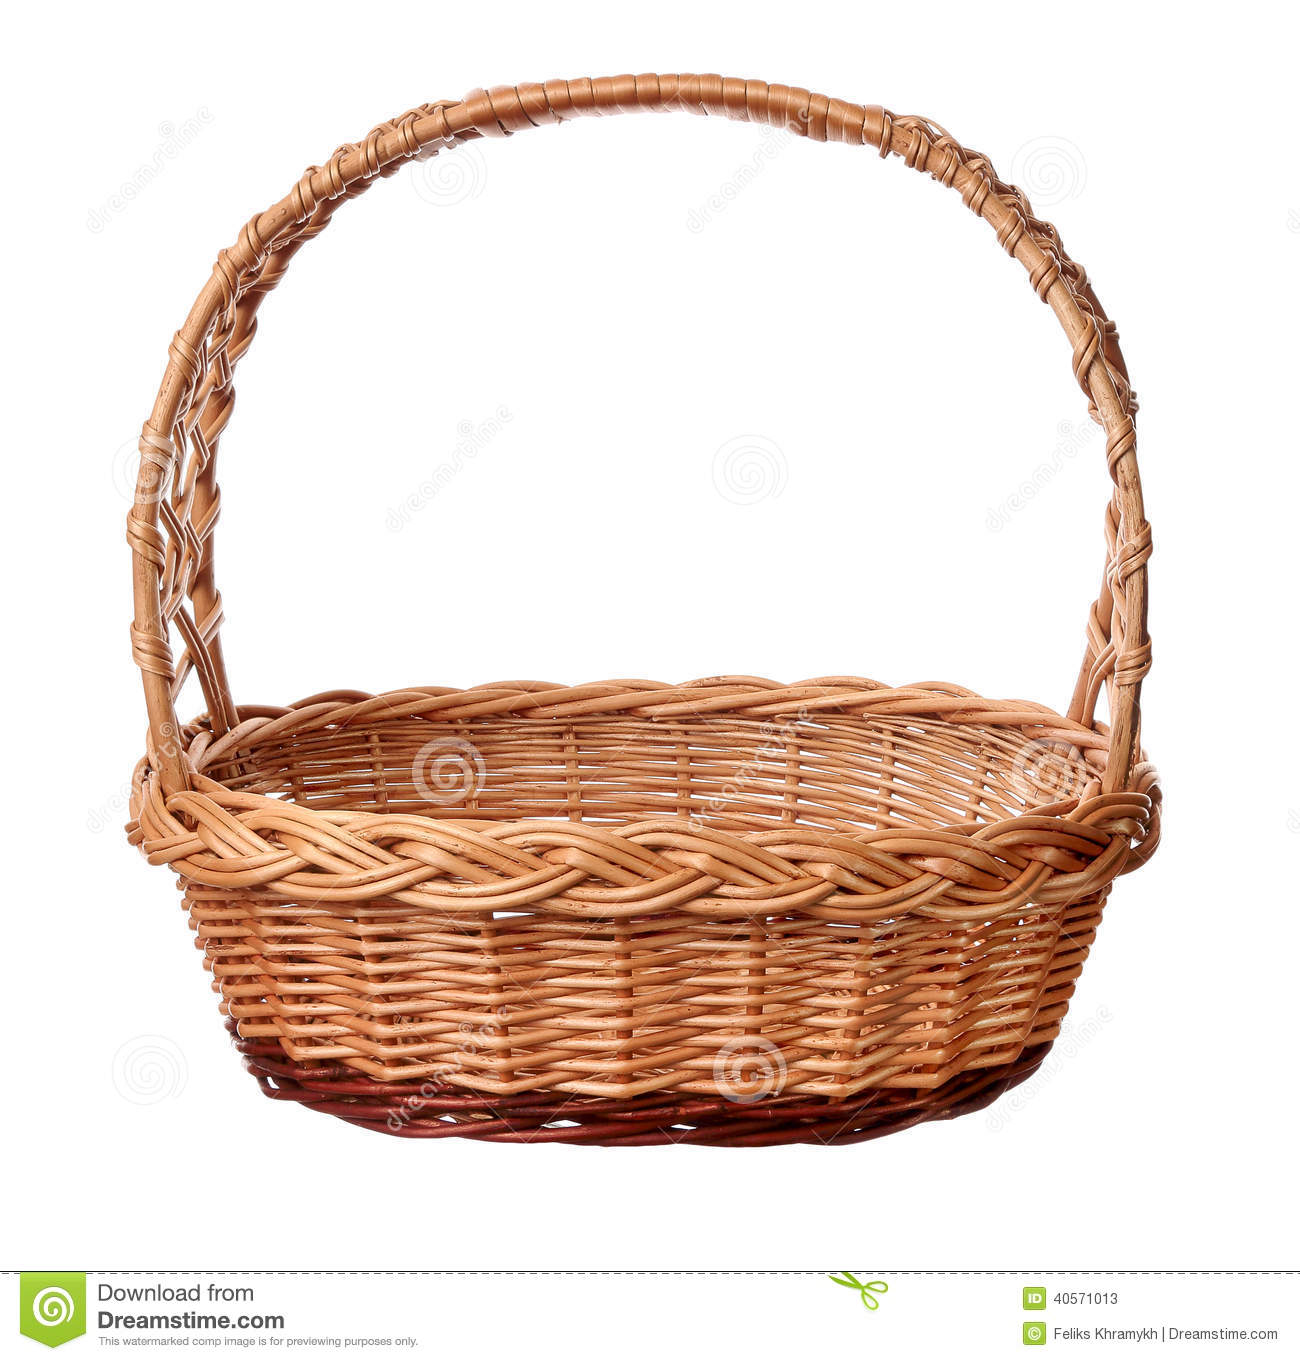 White wicker baskets with handle - A Wicker Basket With Handle